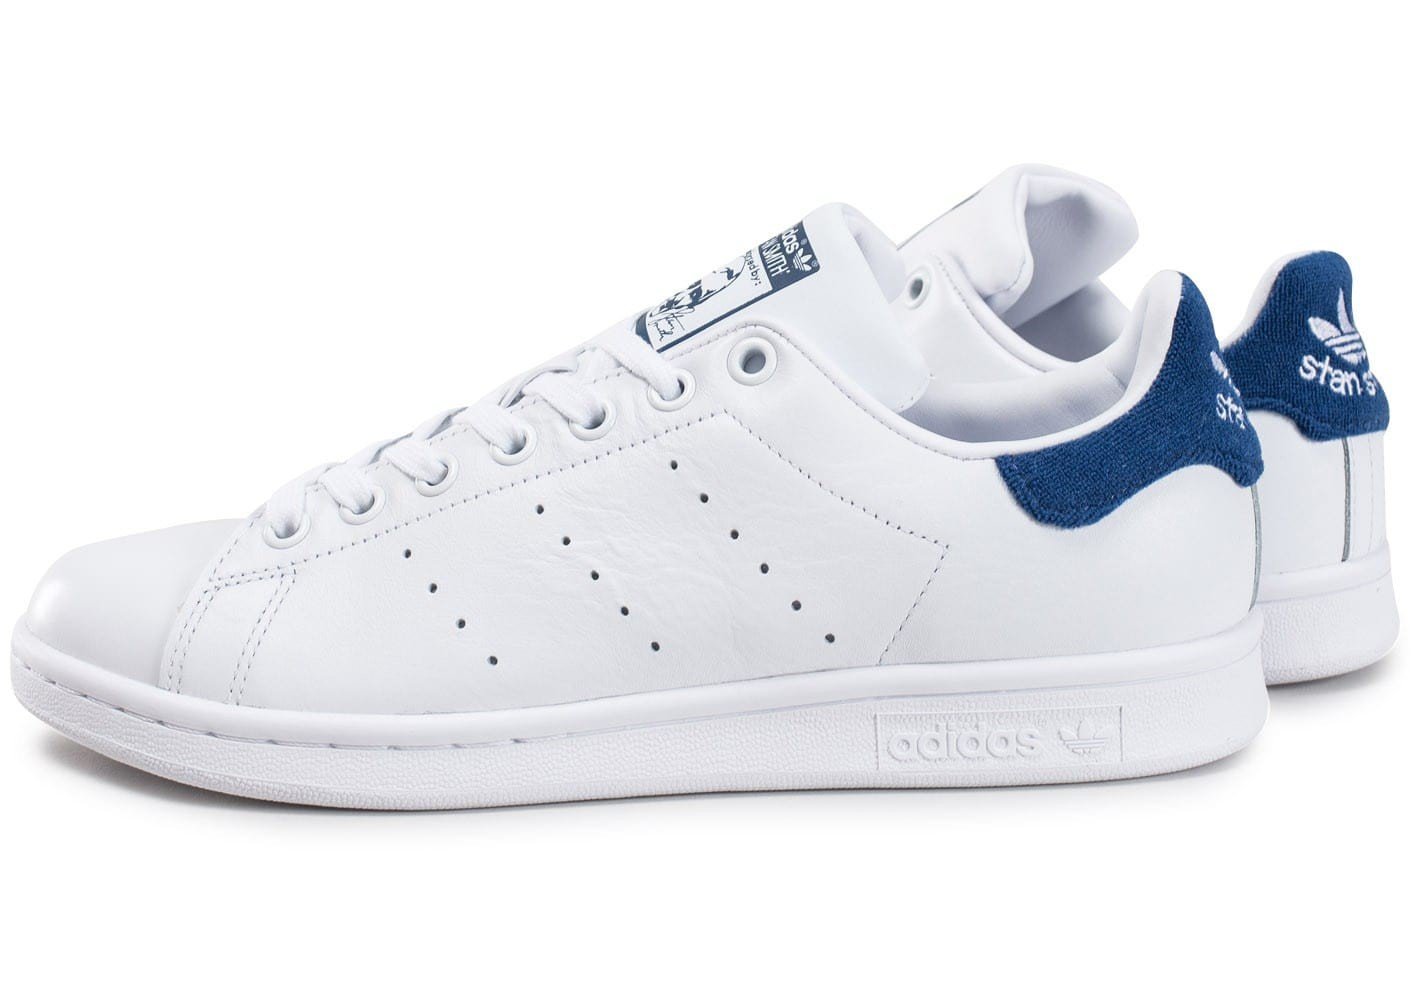 8d6421d8fa87 Populaire Adidas Stan Smith Homme PAG378